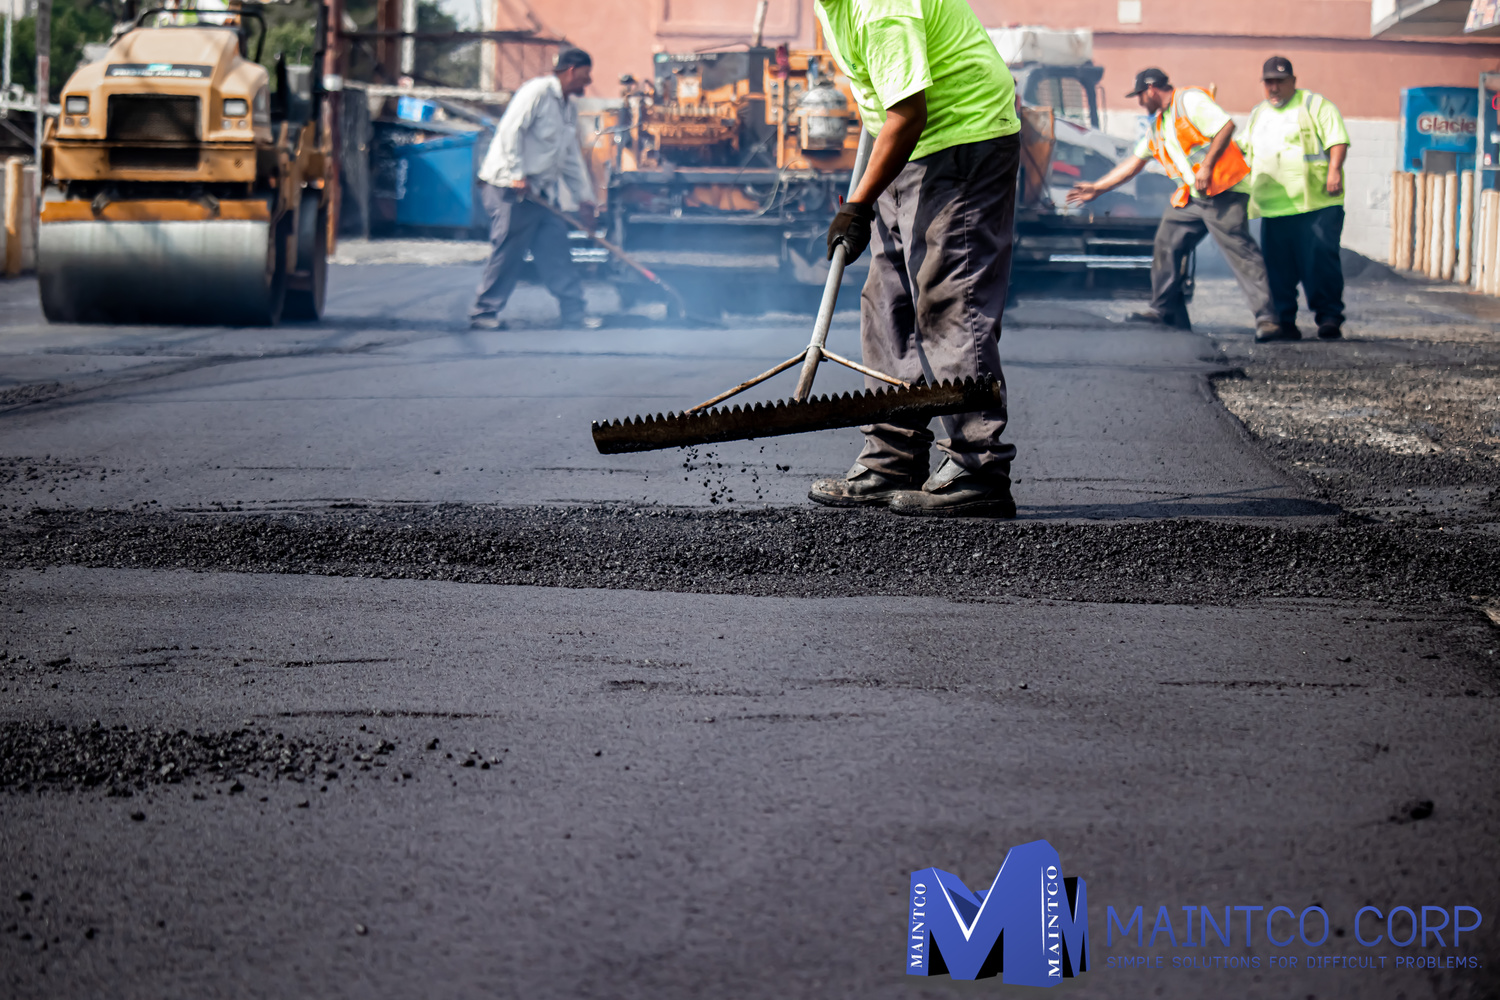 Maintco employees finishing up a parking lot paving project